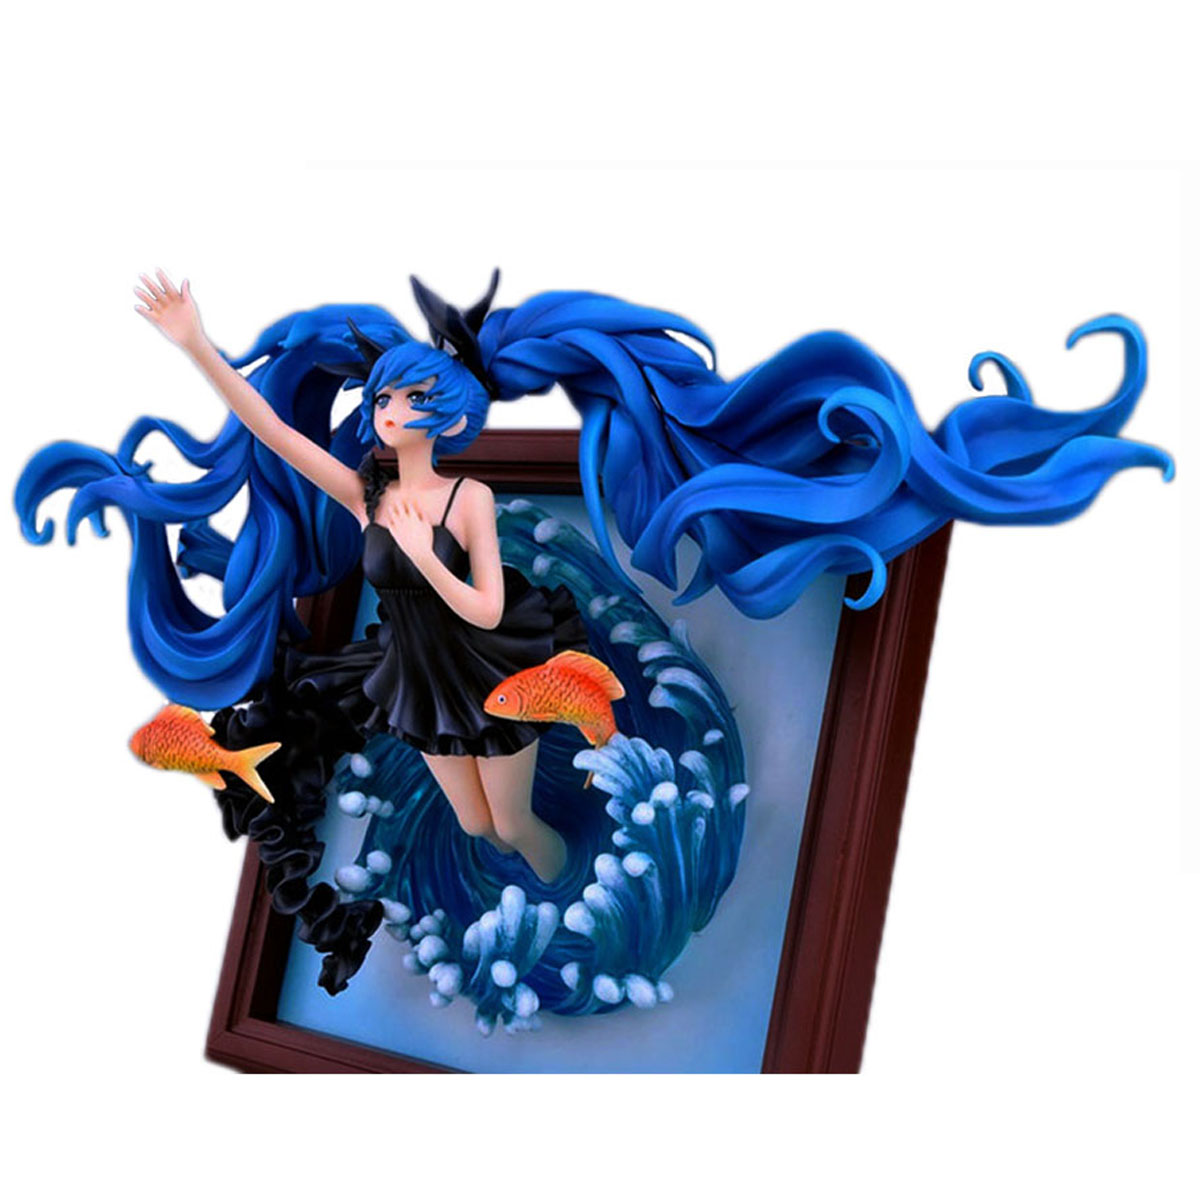 цена на Chanycore Janpan Vocaloid Hatsune Miku Anime Figure Photo Frame Deep Sea Girl Ver. 1/8 Scale PVC Figure Collection Doll Toy 35cm